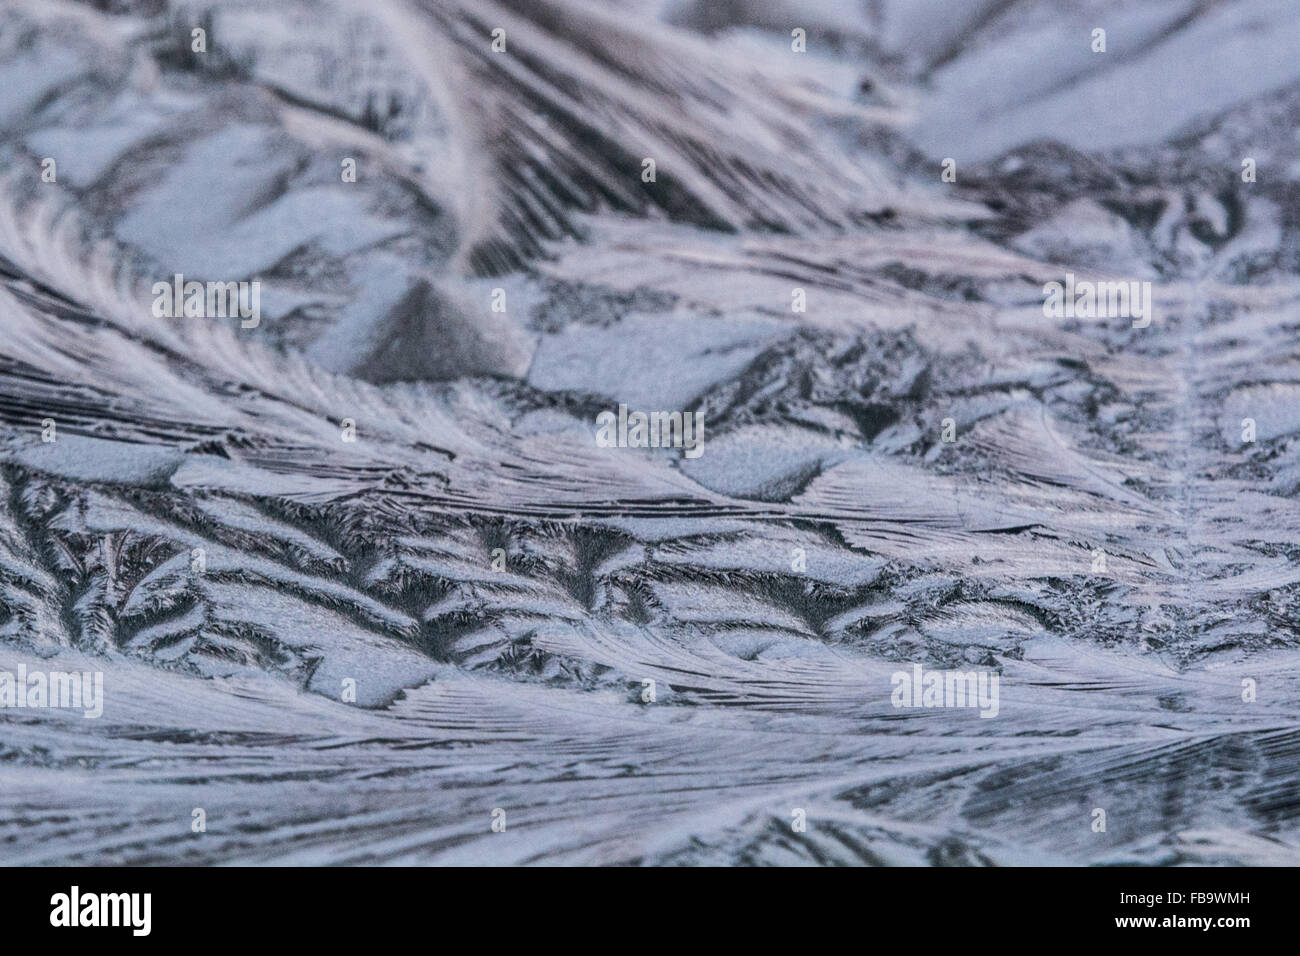 Solihull, Birmingham, UK. 13th January 2016. UK Weather. Motorists across the midlands greeted this morning by icy - Stock Image